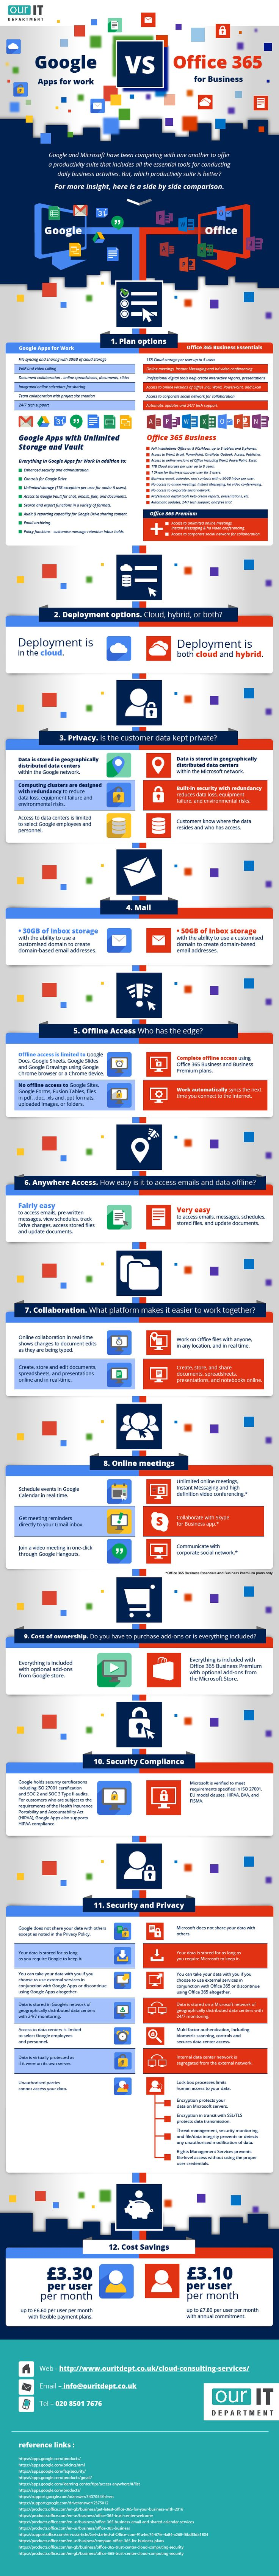 Google Apps For Work vs. Office 365 For Business - #infographic